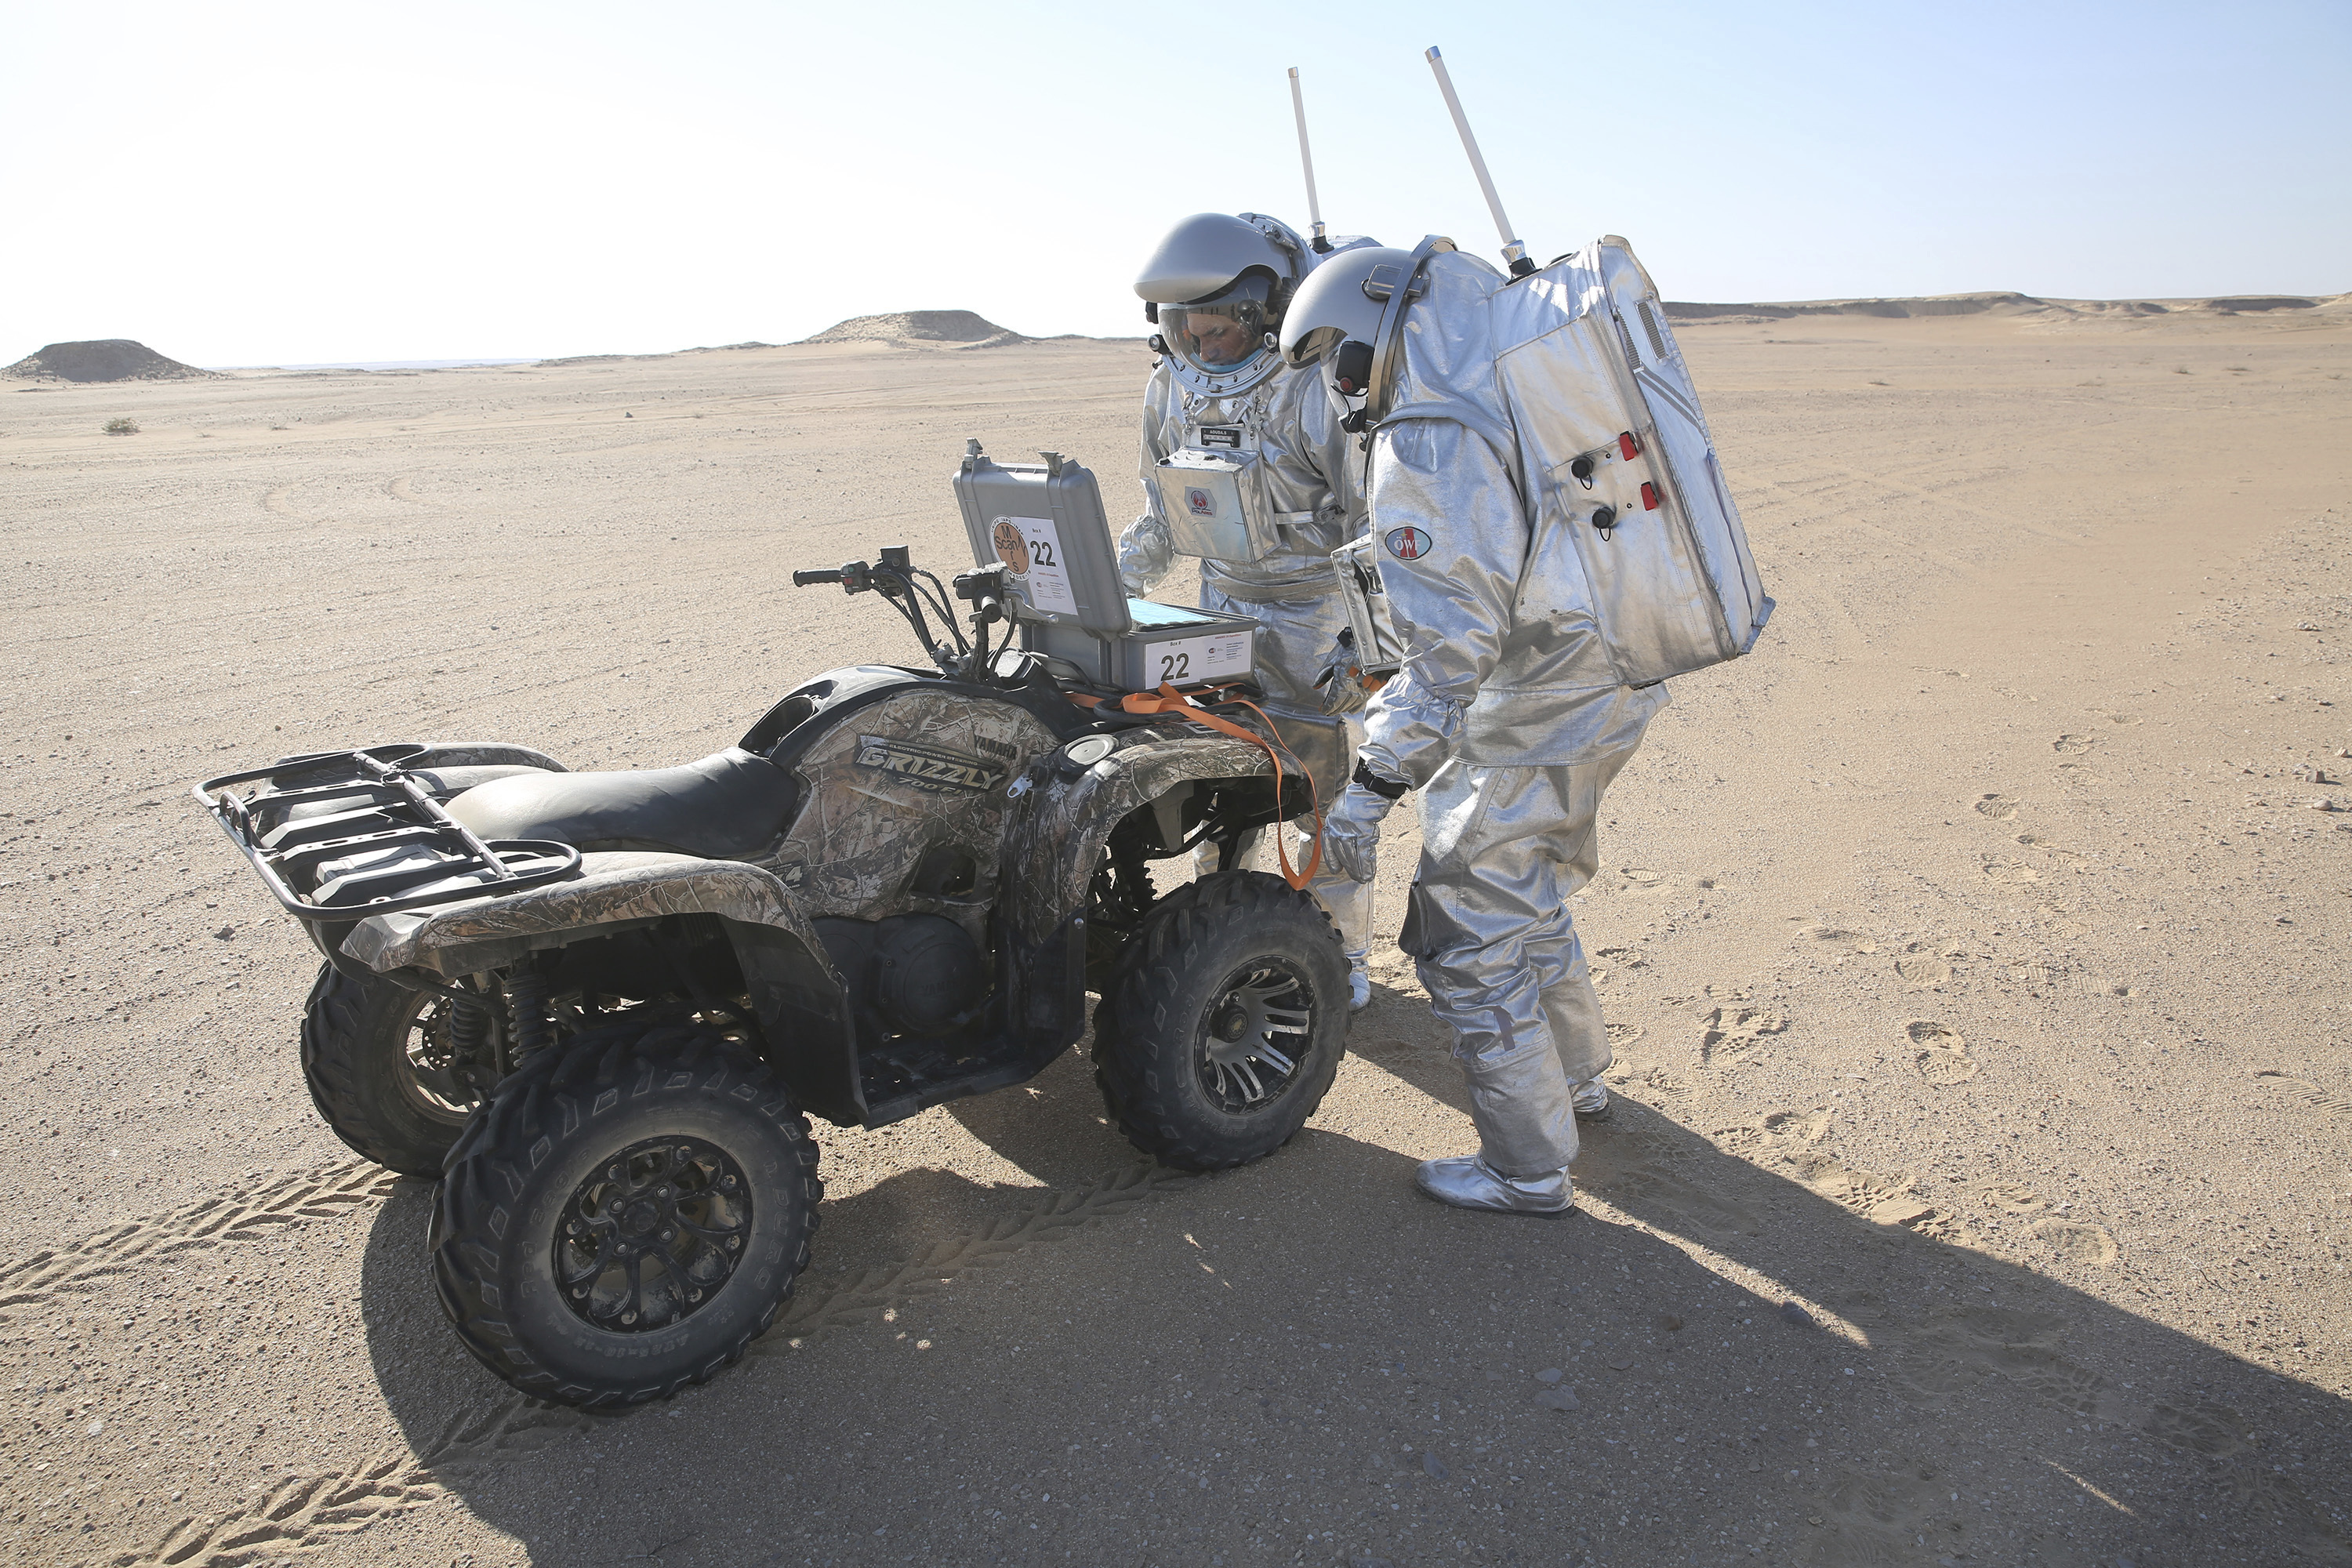 Two scientists test space suits and a geo-radar for use in a future Mars mission in the Dhofar desert of southern Oman (Sam McNeil/PA)